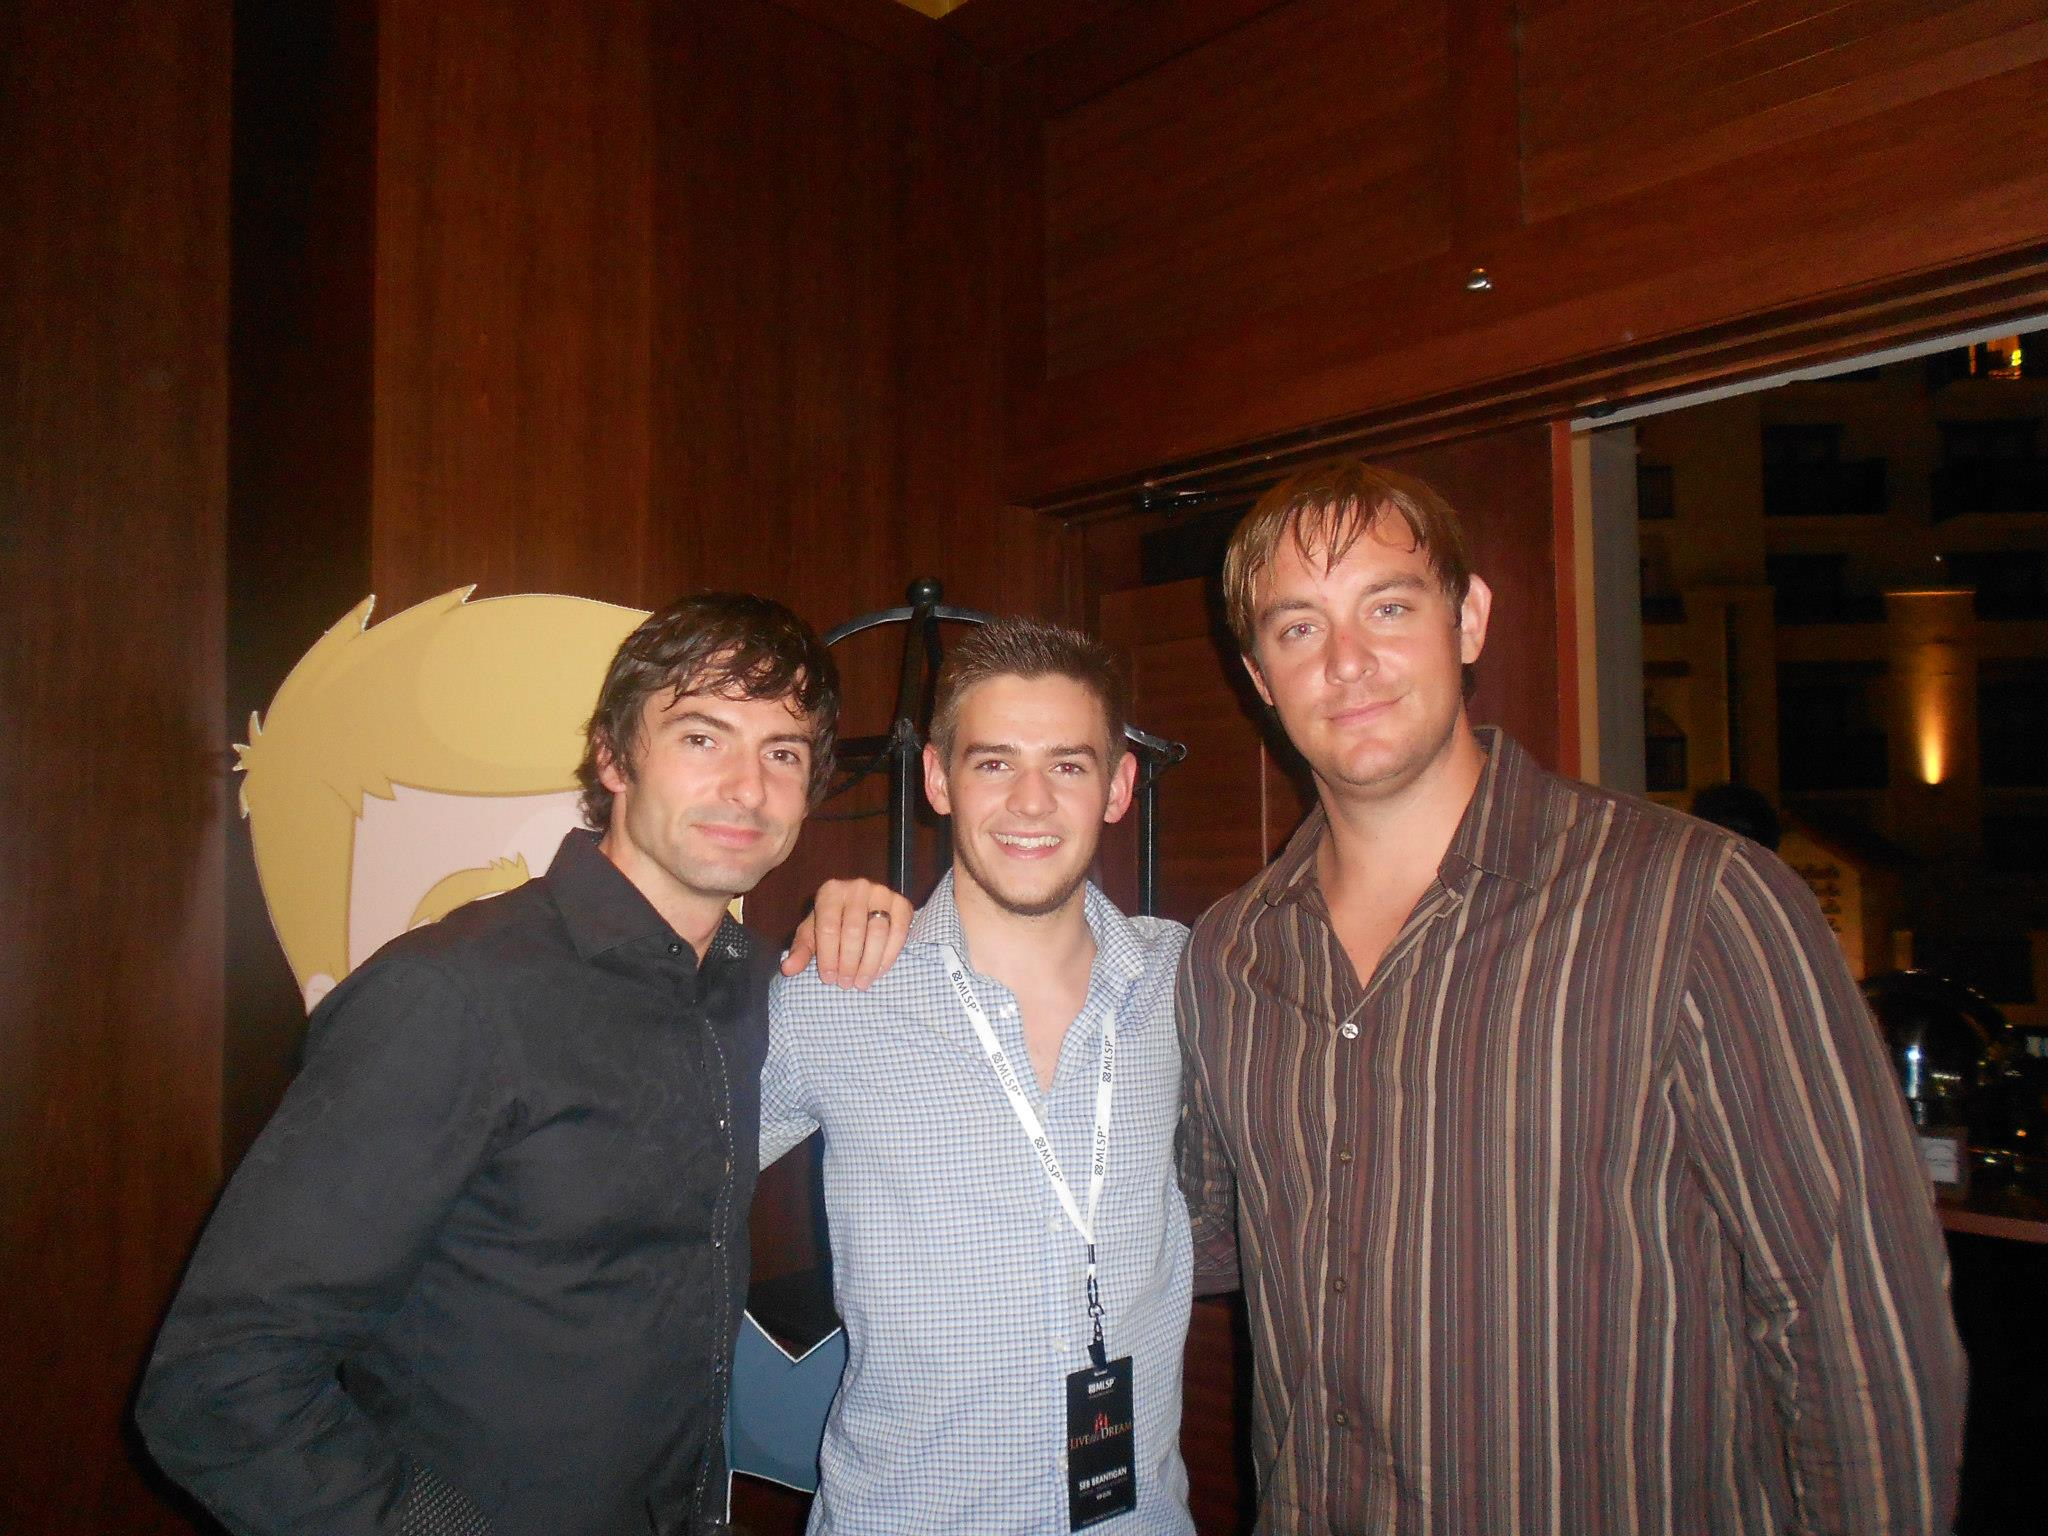 Seb Brantigan, Ryan Angelo and Norbert Orlewicz at Live the Dream in Dallas Texas